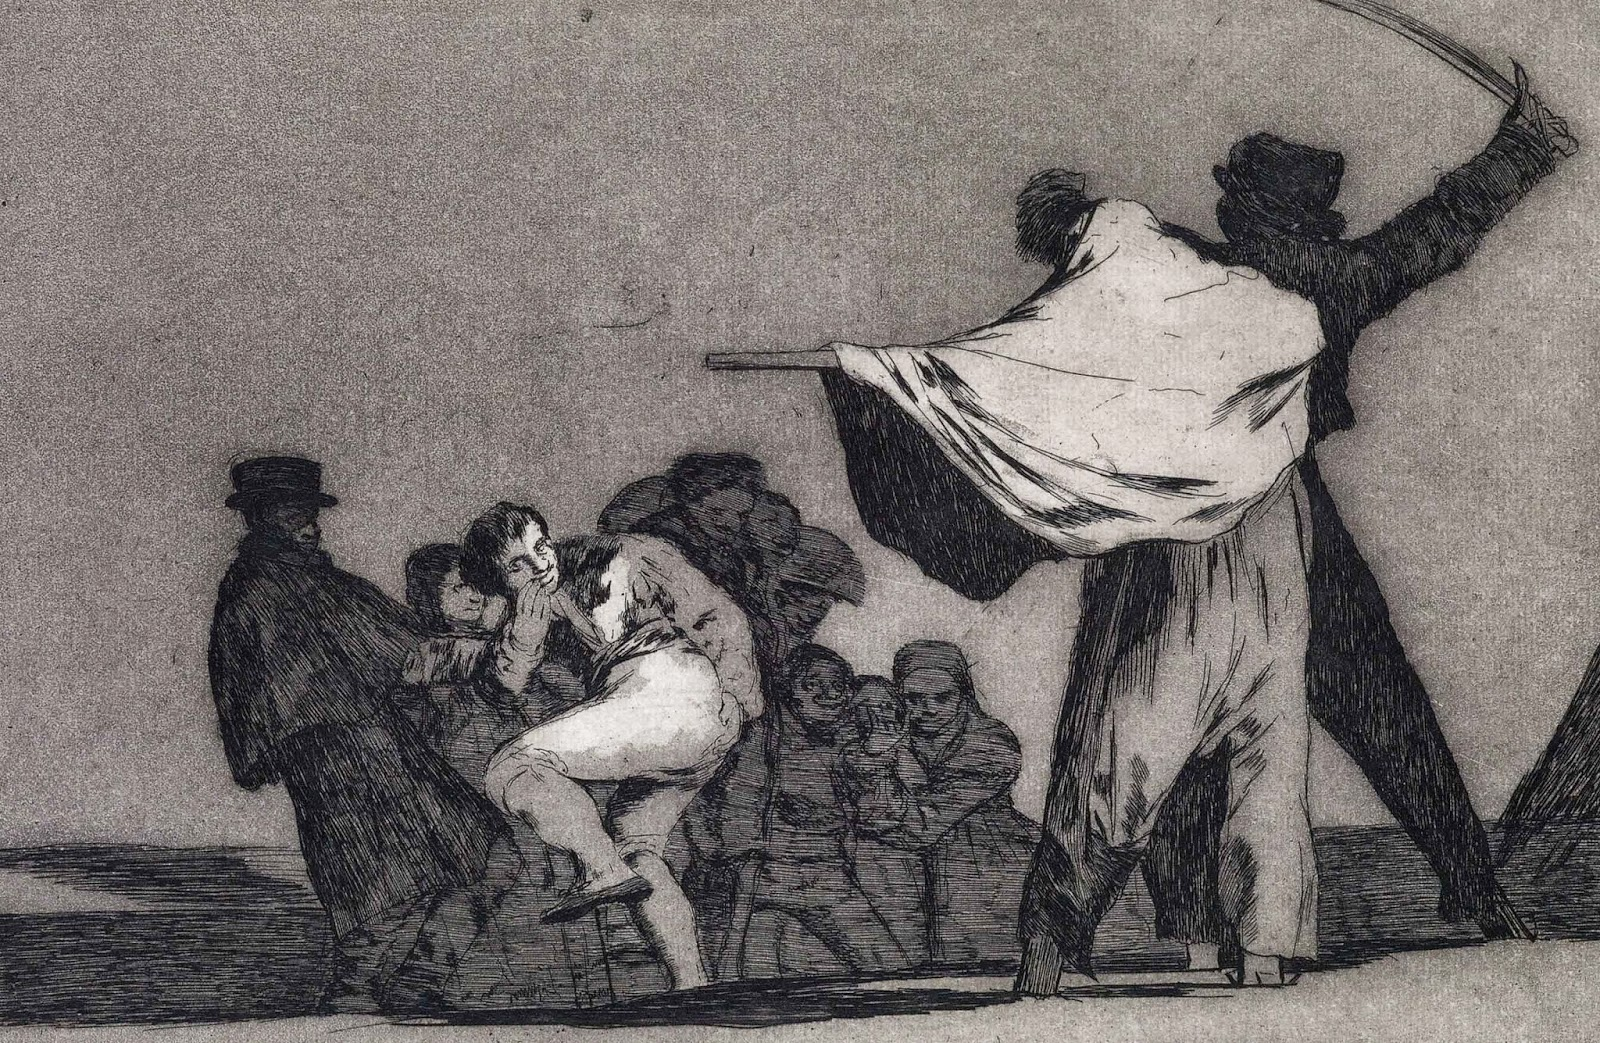 Francisco José De Goya And Modern Art Swann Galleries News - Francisco goya paintings